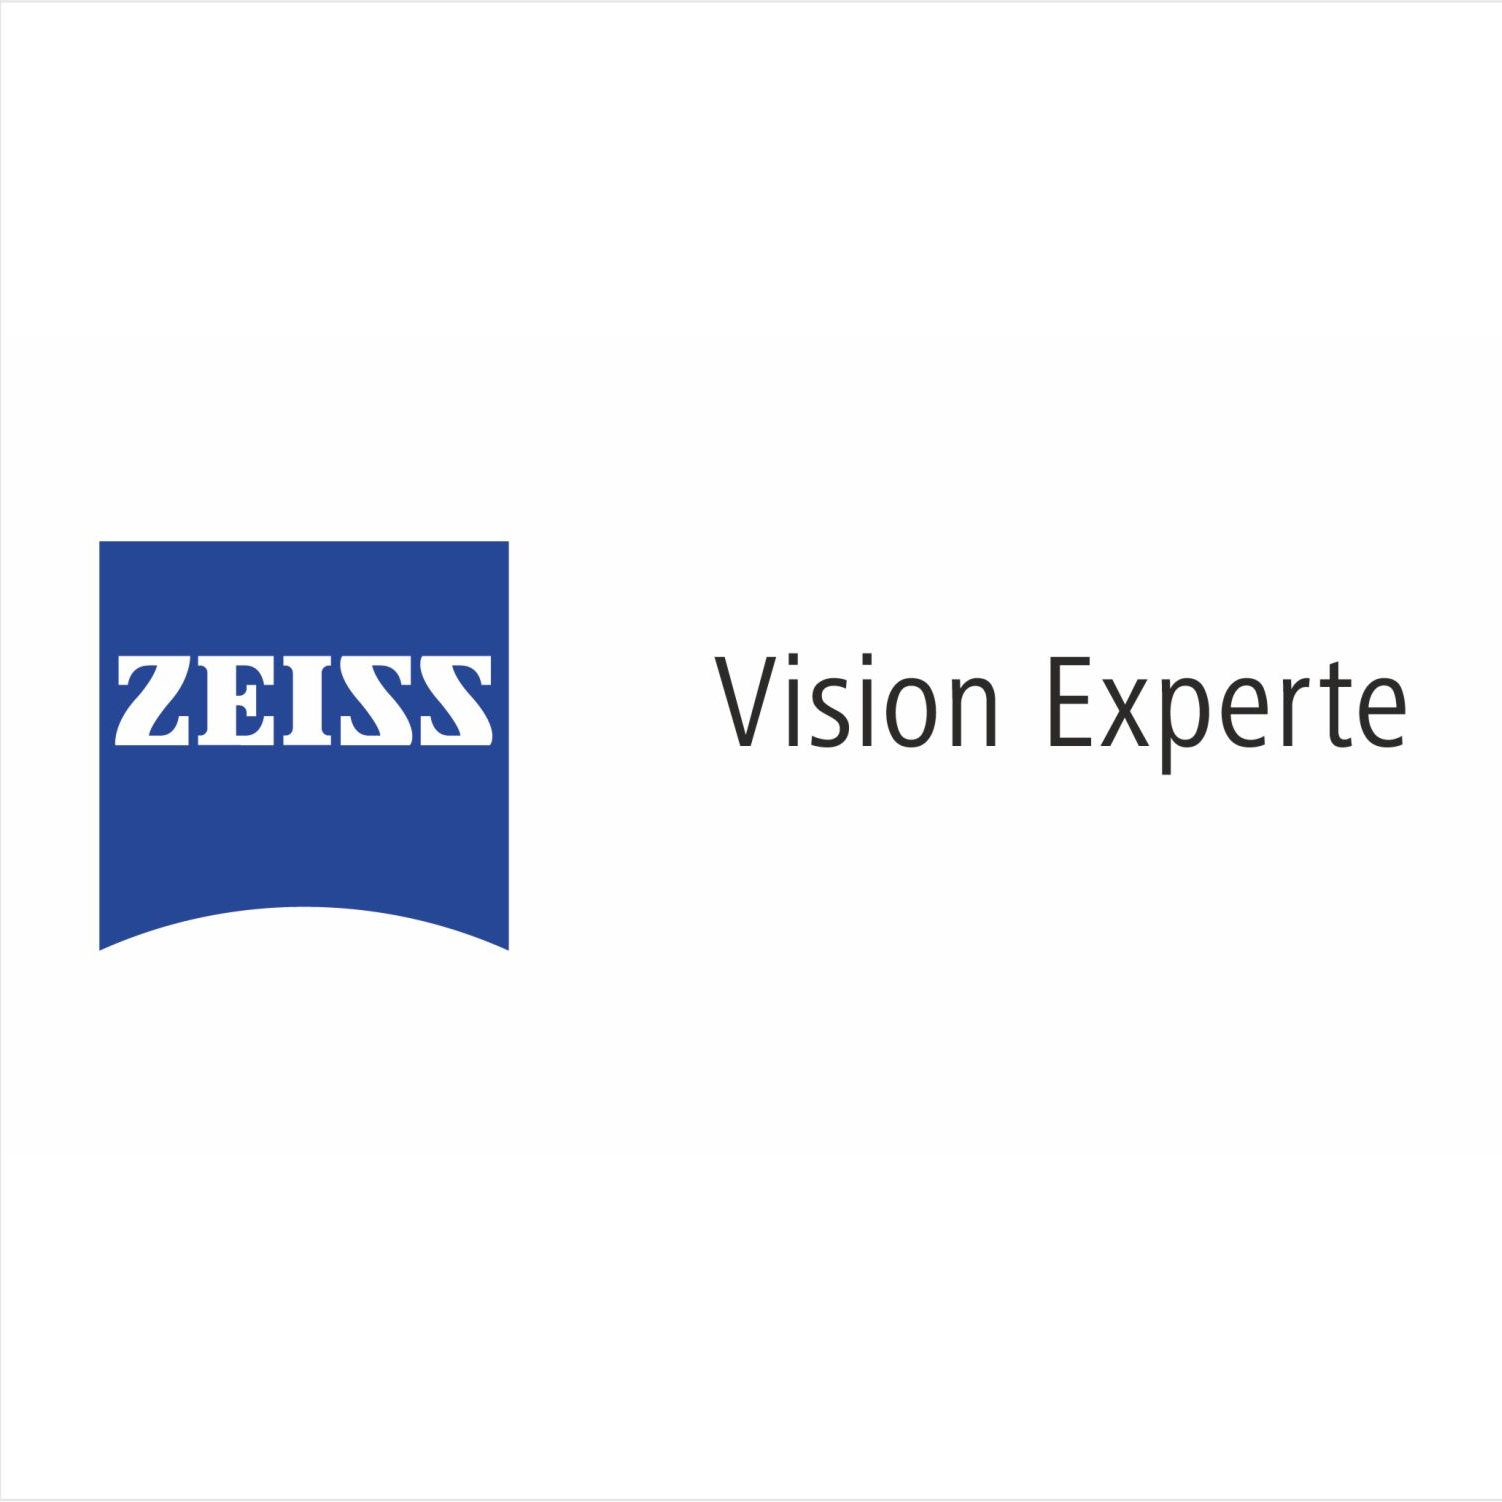 Zeiss-Vision-Experte